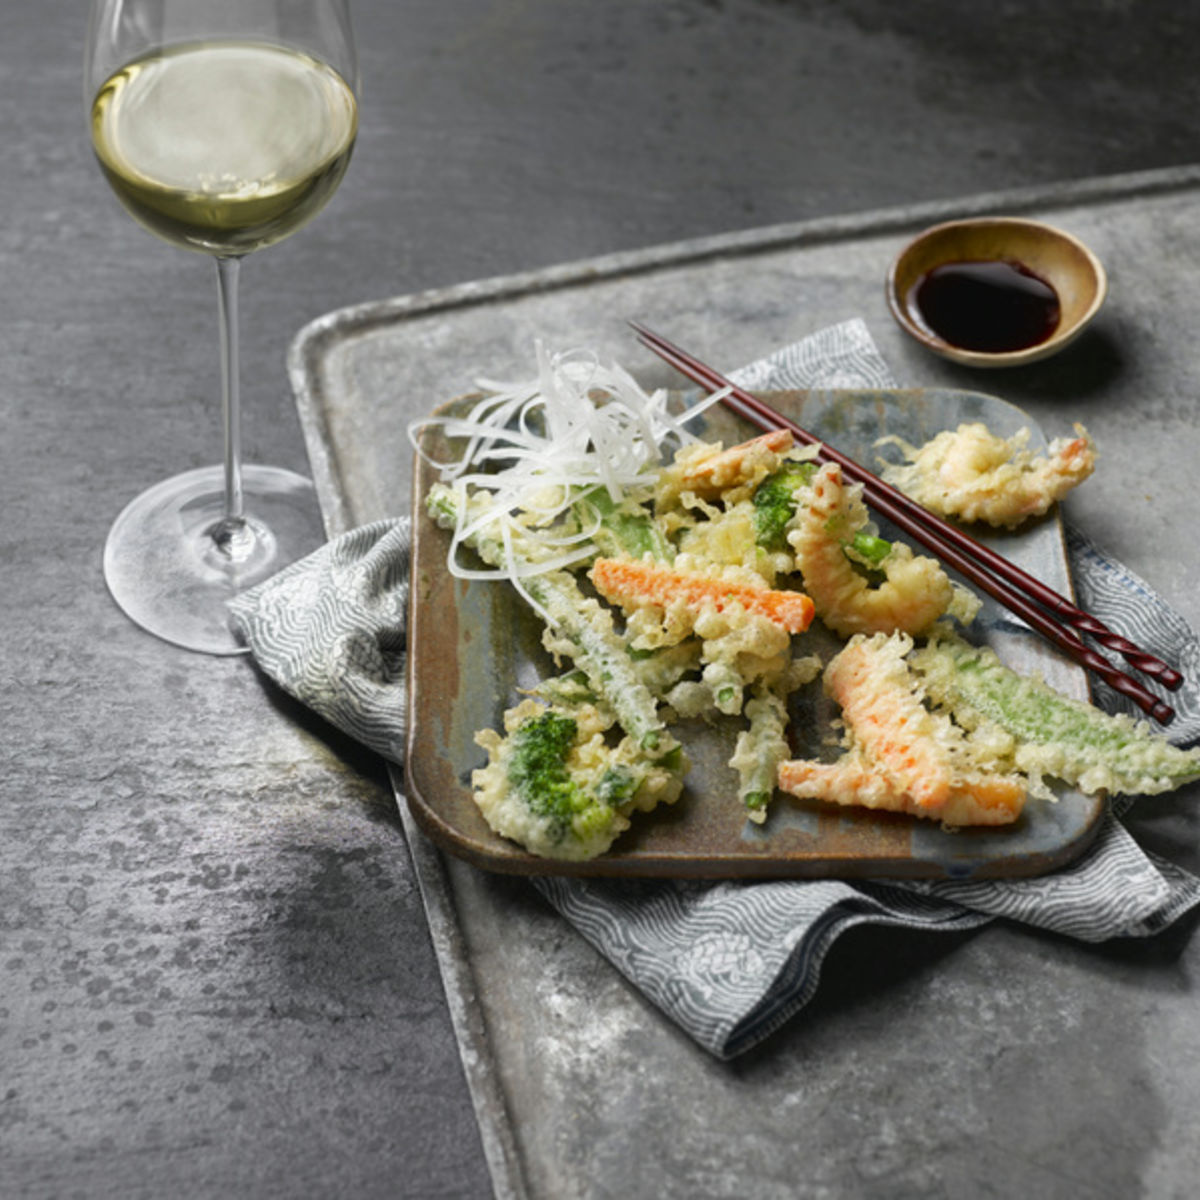 The picture shows fried vegetables with a glass of white wine.